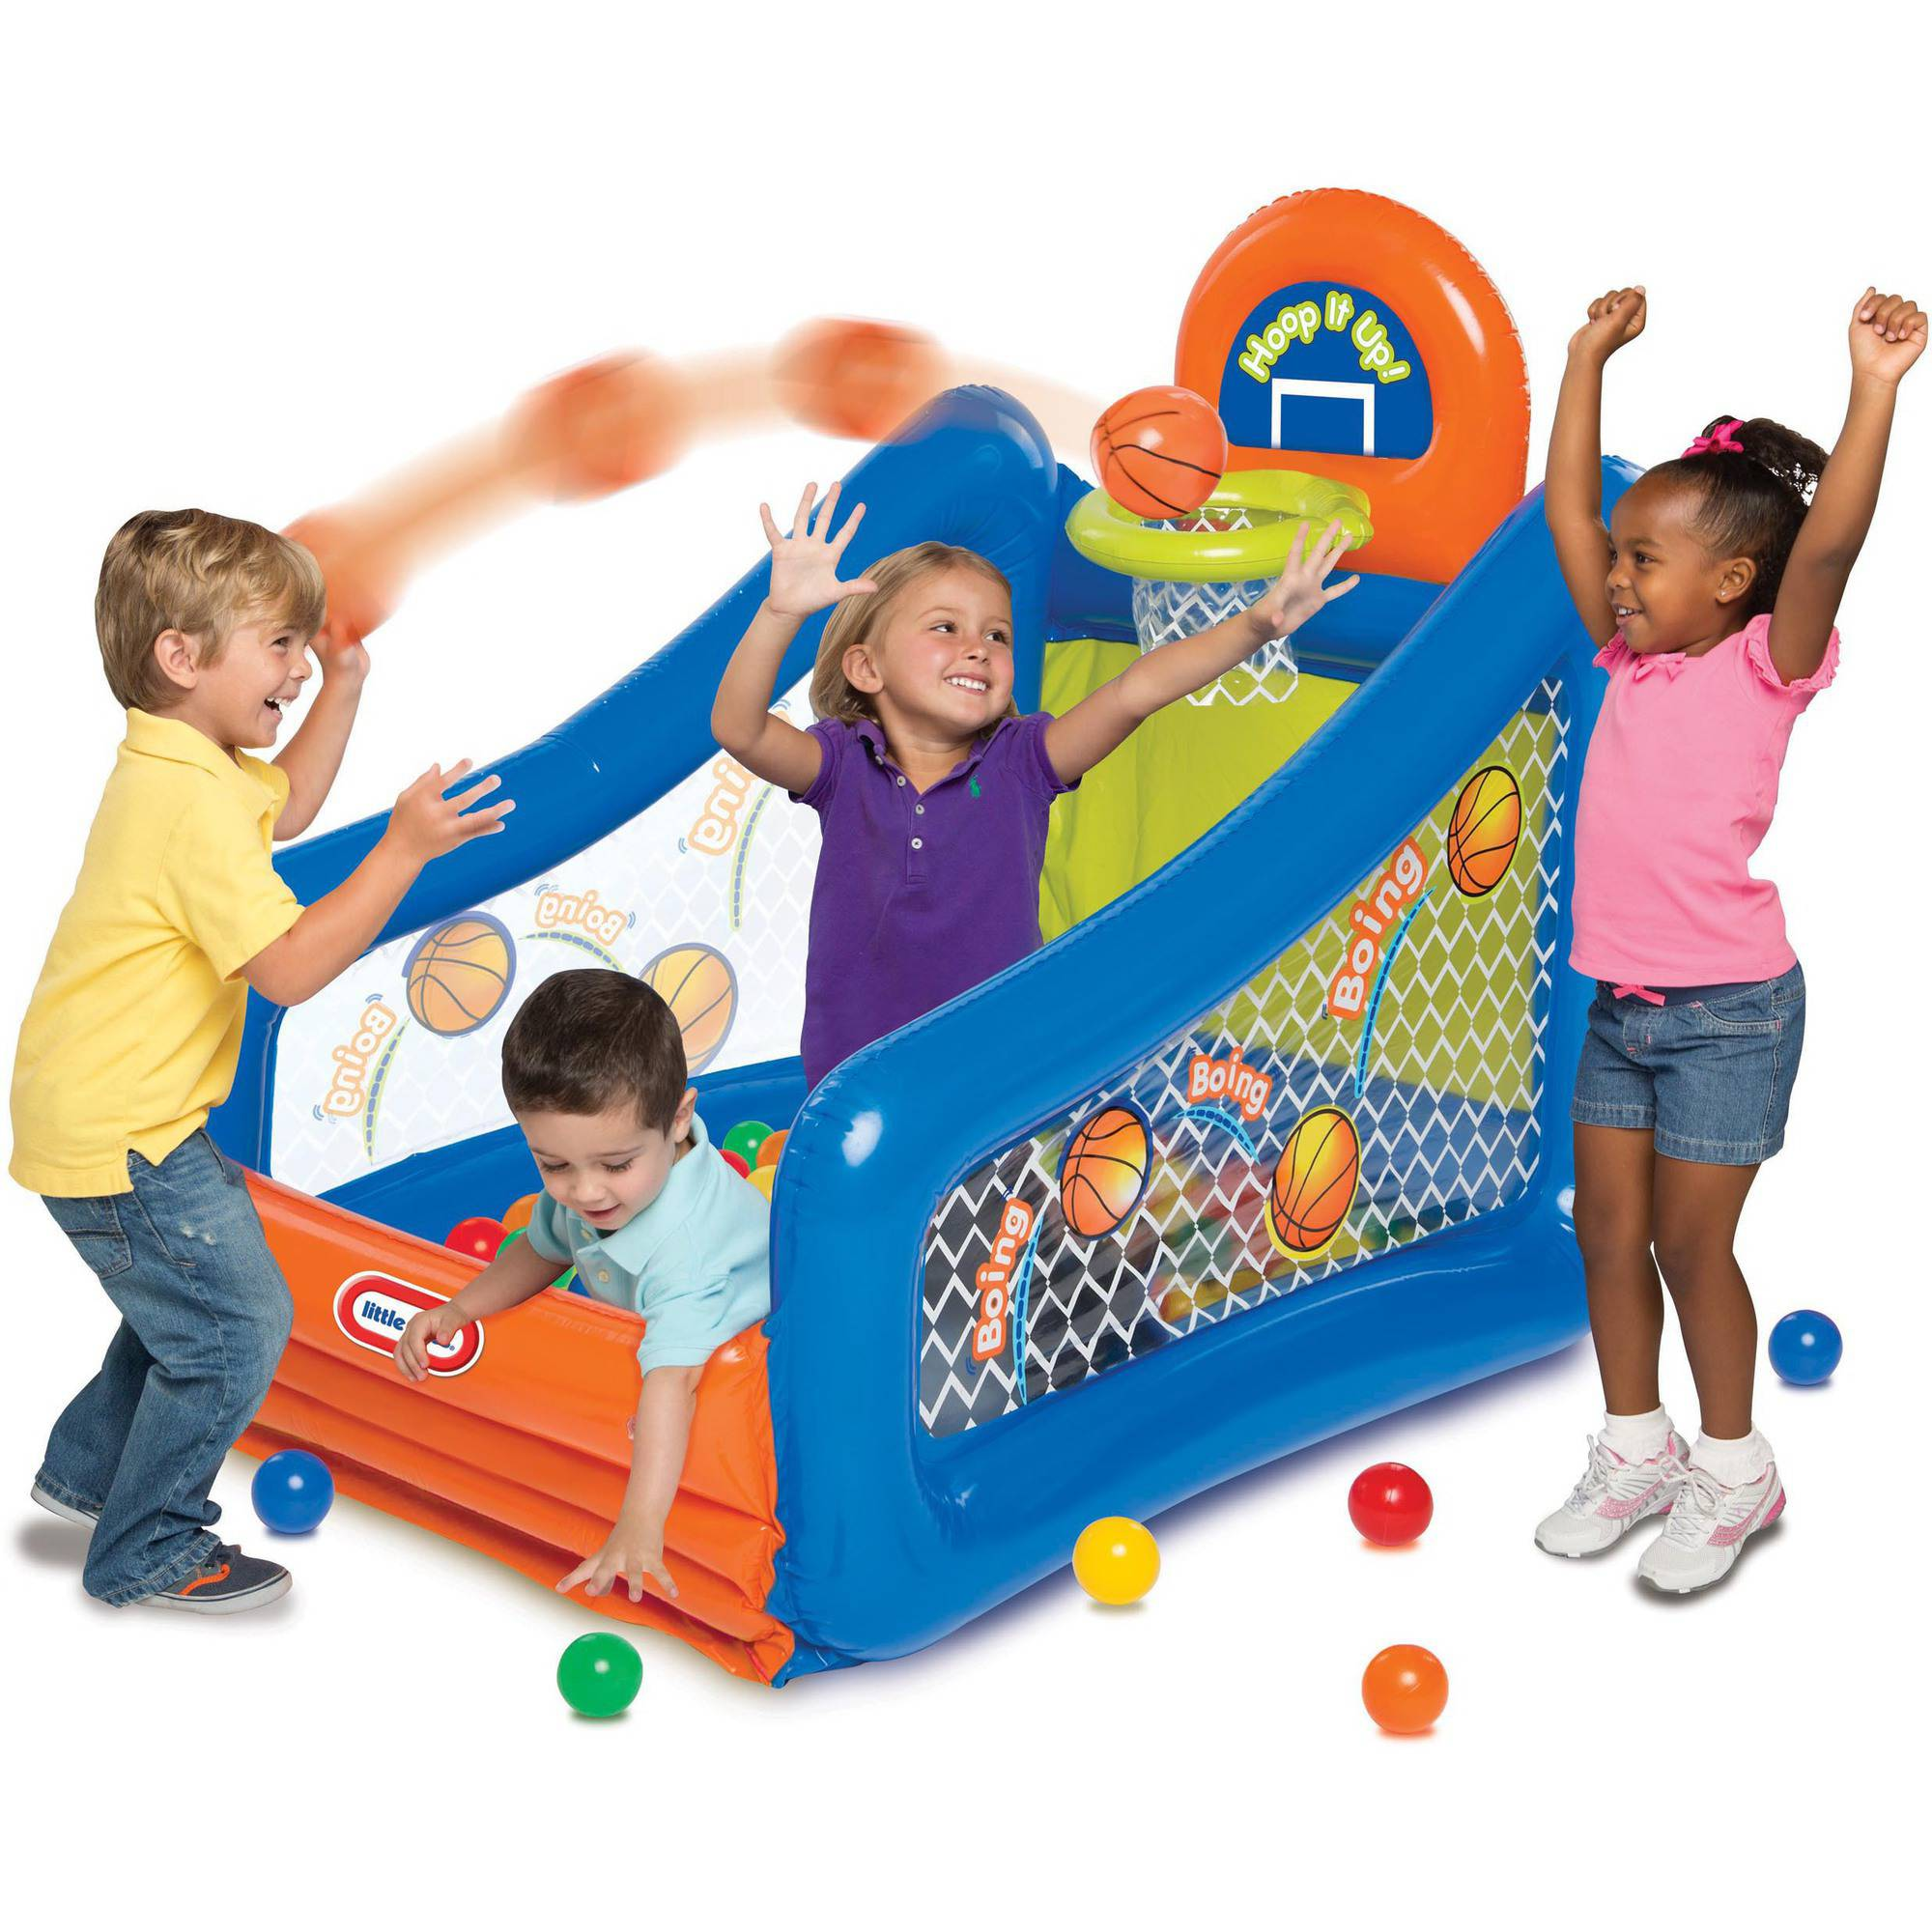 Little Ball Toys : Little tikes hoop it up play center ball pit inflatable